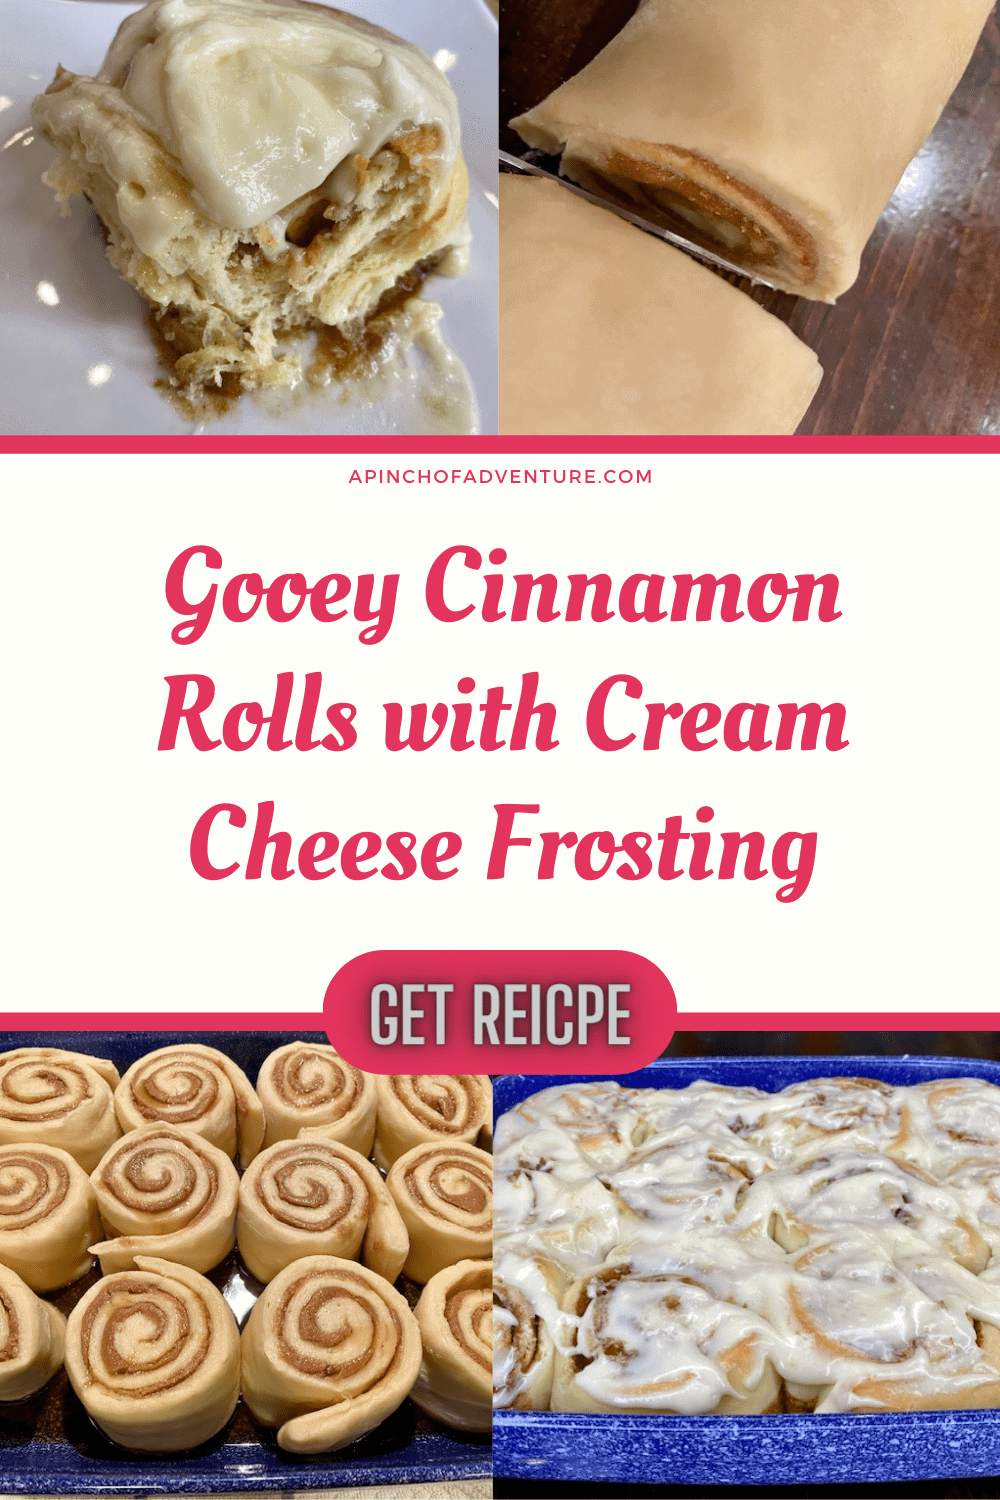 This is the best homemade cinnamon roll recipe with cream cheese frosting. It's even better than Cinnabon and it rivals the Pioneer Woman cinnamon rolls recipe. These gooey flaky cinnamon rolls are perfectly fluffy and the cinnamon filling is perfect. Complete it with homemade cream cheese frosting for cinnamon rolls and it is the perfect Christmas morning cinnamon roll recipes. This brunch recipe is great for special occasions and the perfect breakfast sweet